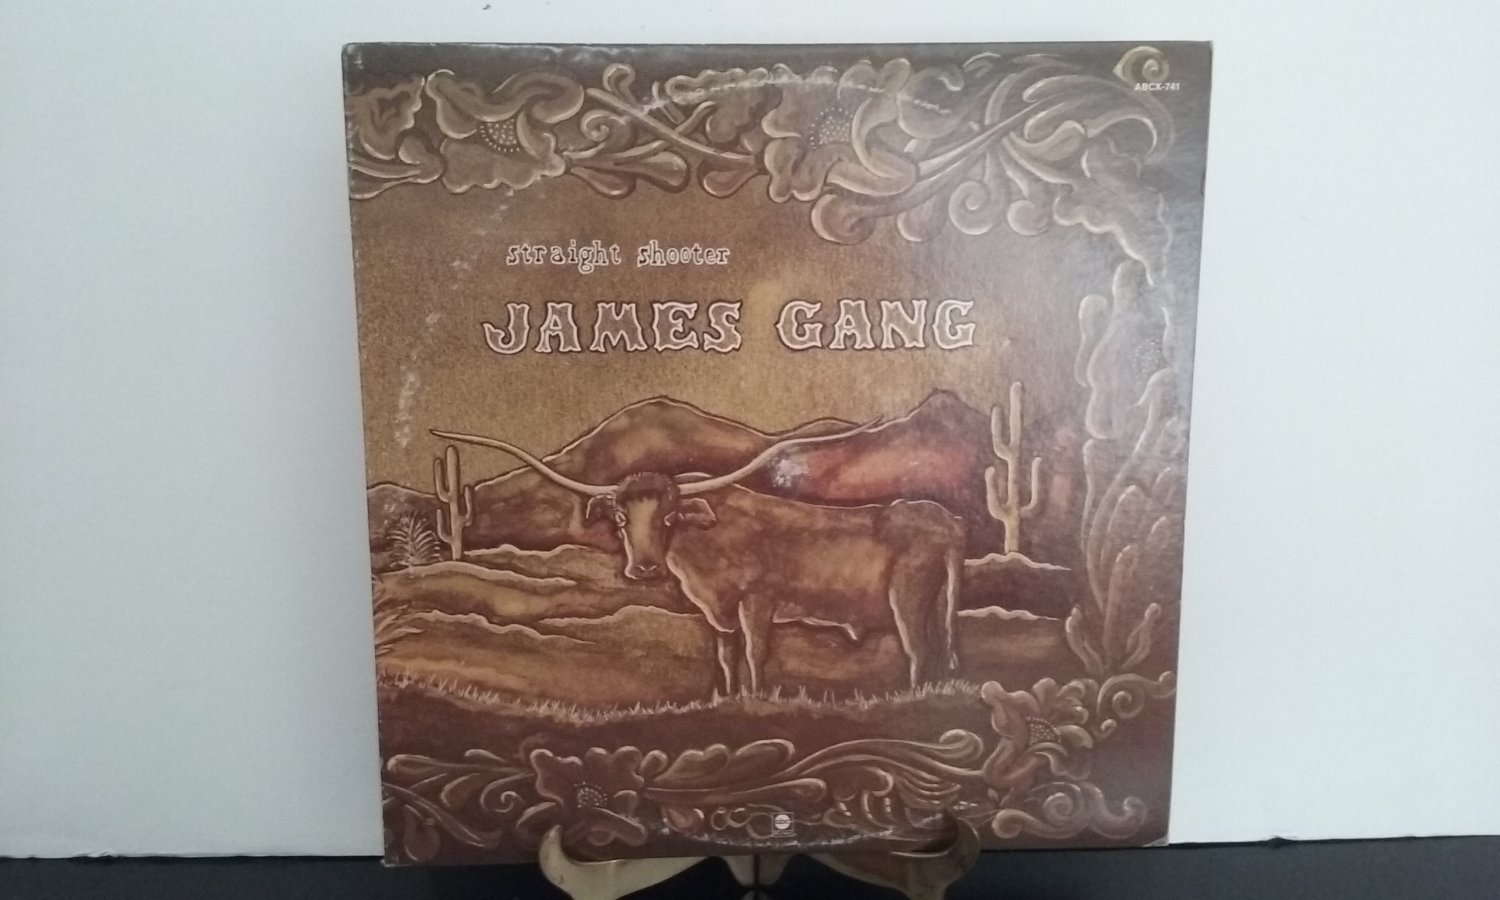 James Gang - Straight Shooter - Circa 1972